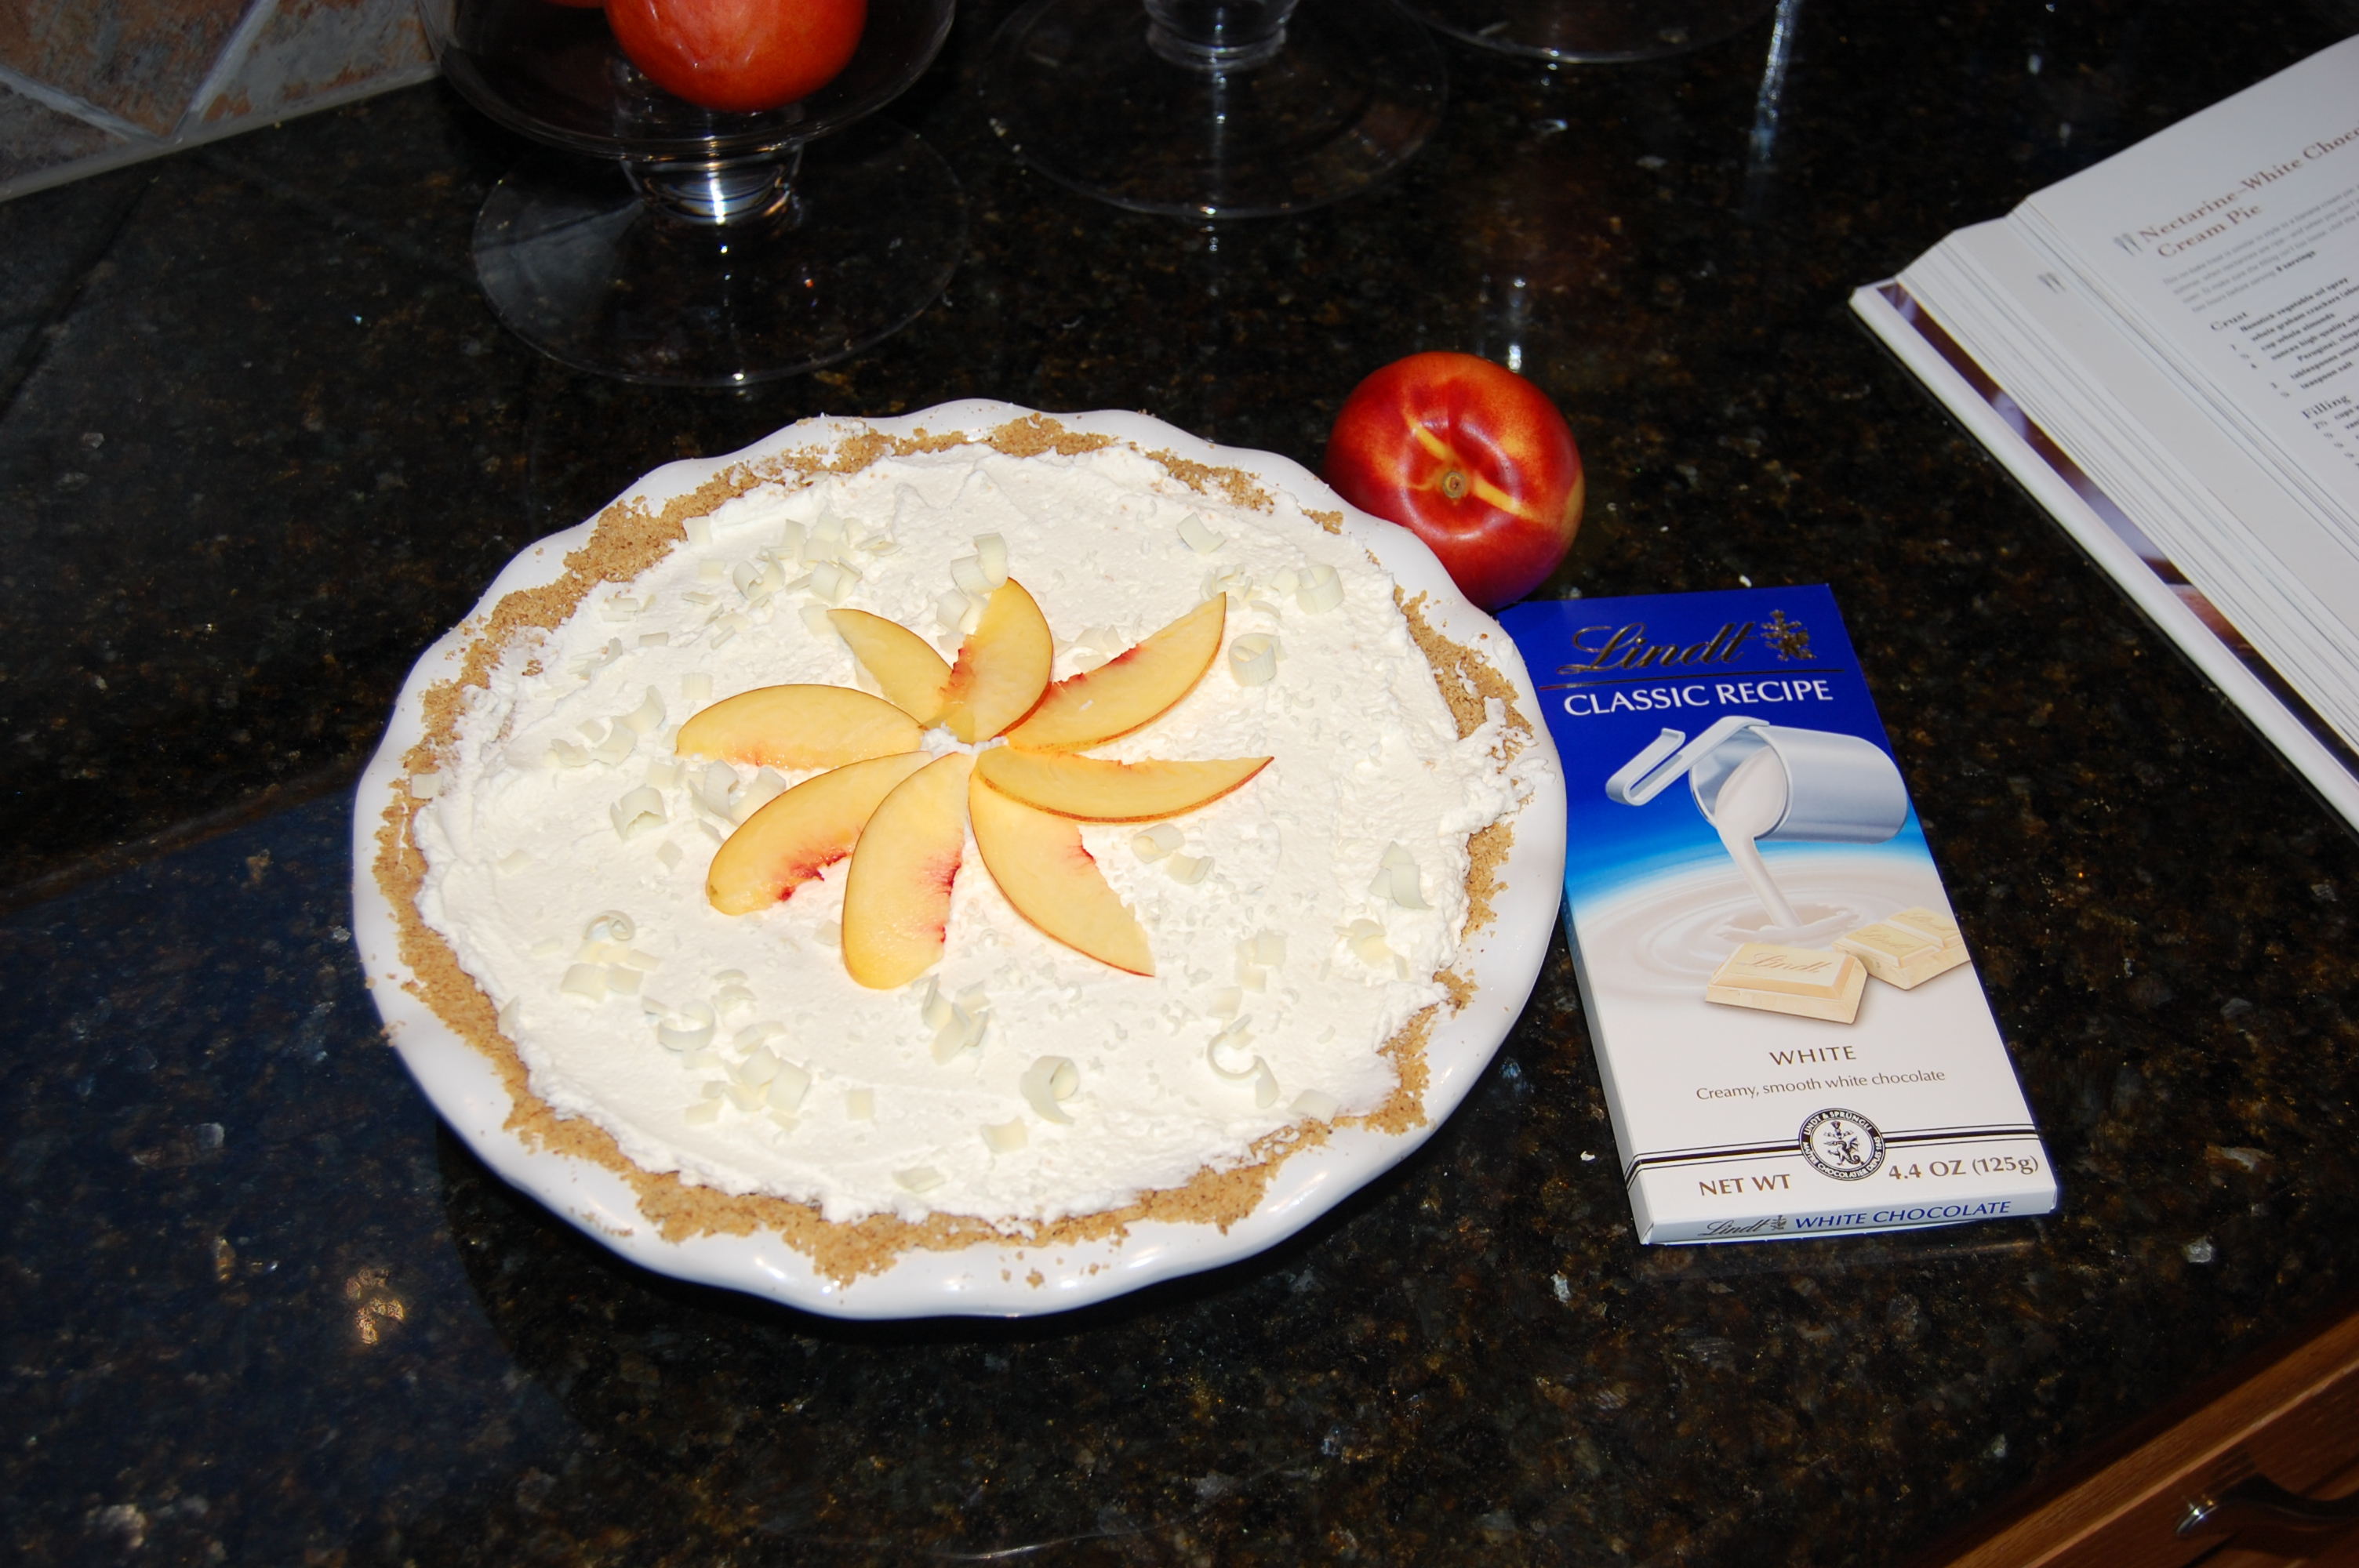 Lindt White Chocolate and Nectarine Cream Pie